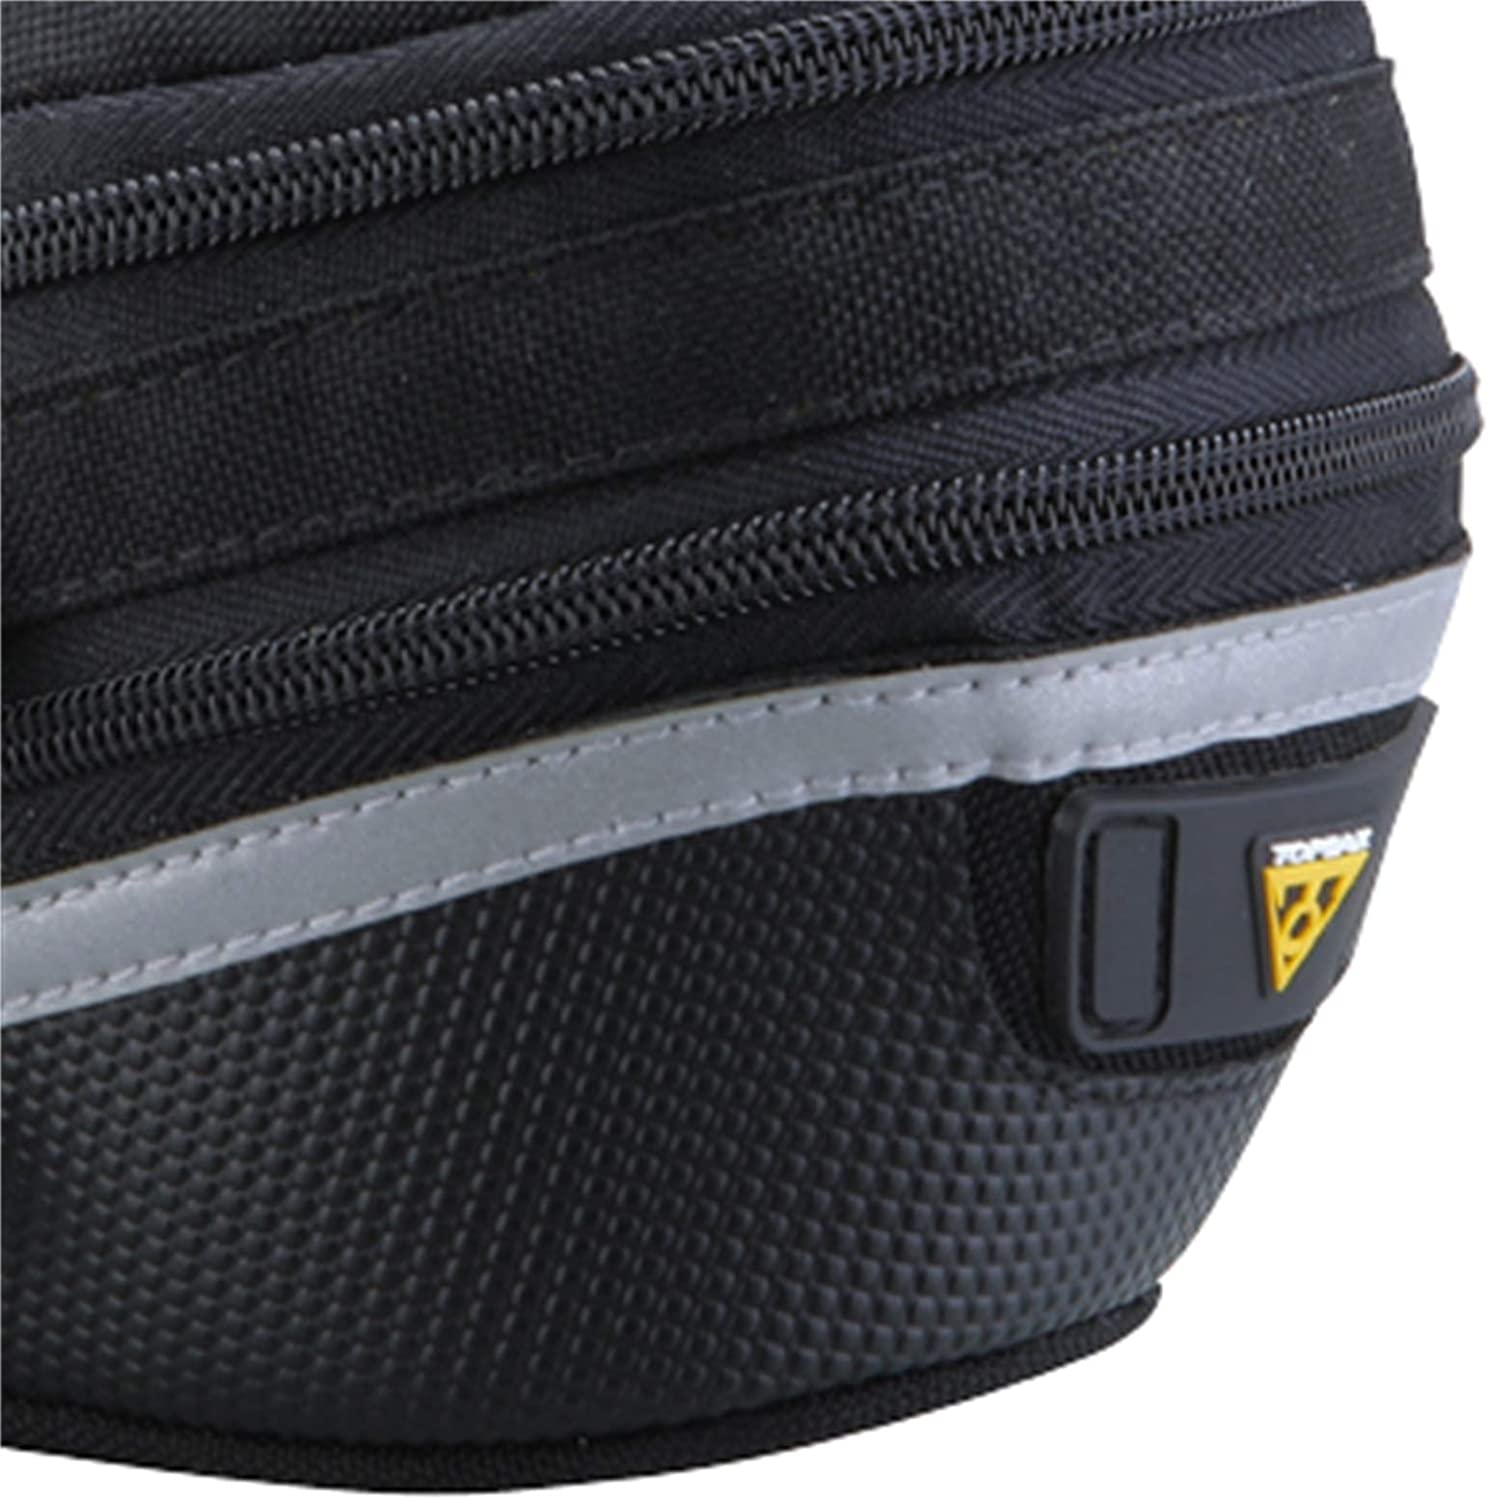 Bolsa de herramientas Topeak Wedge Pack 2 medio alforja: Amazon.es ...